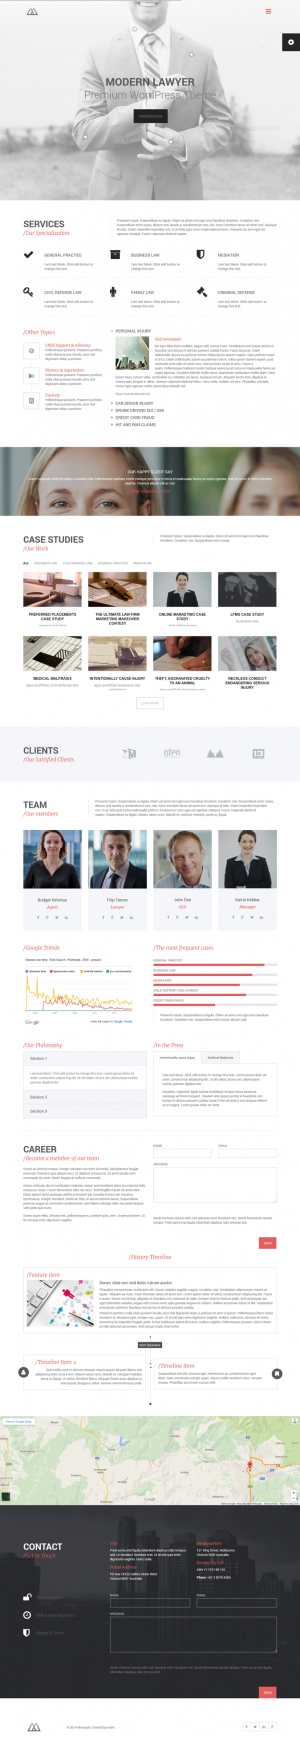 MONOPOL is responsive multipurpose WordPress theme suitable for lawyers, business, companies or ...